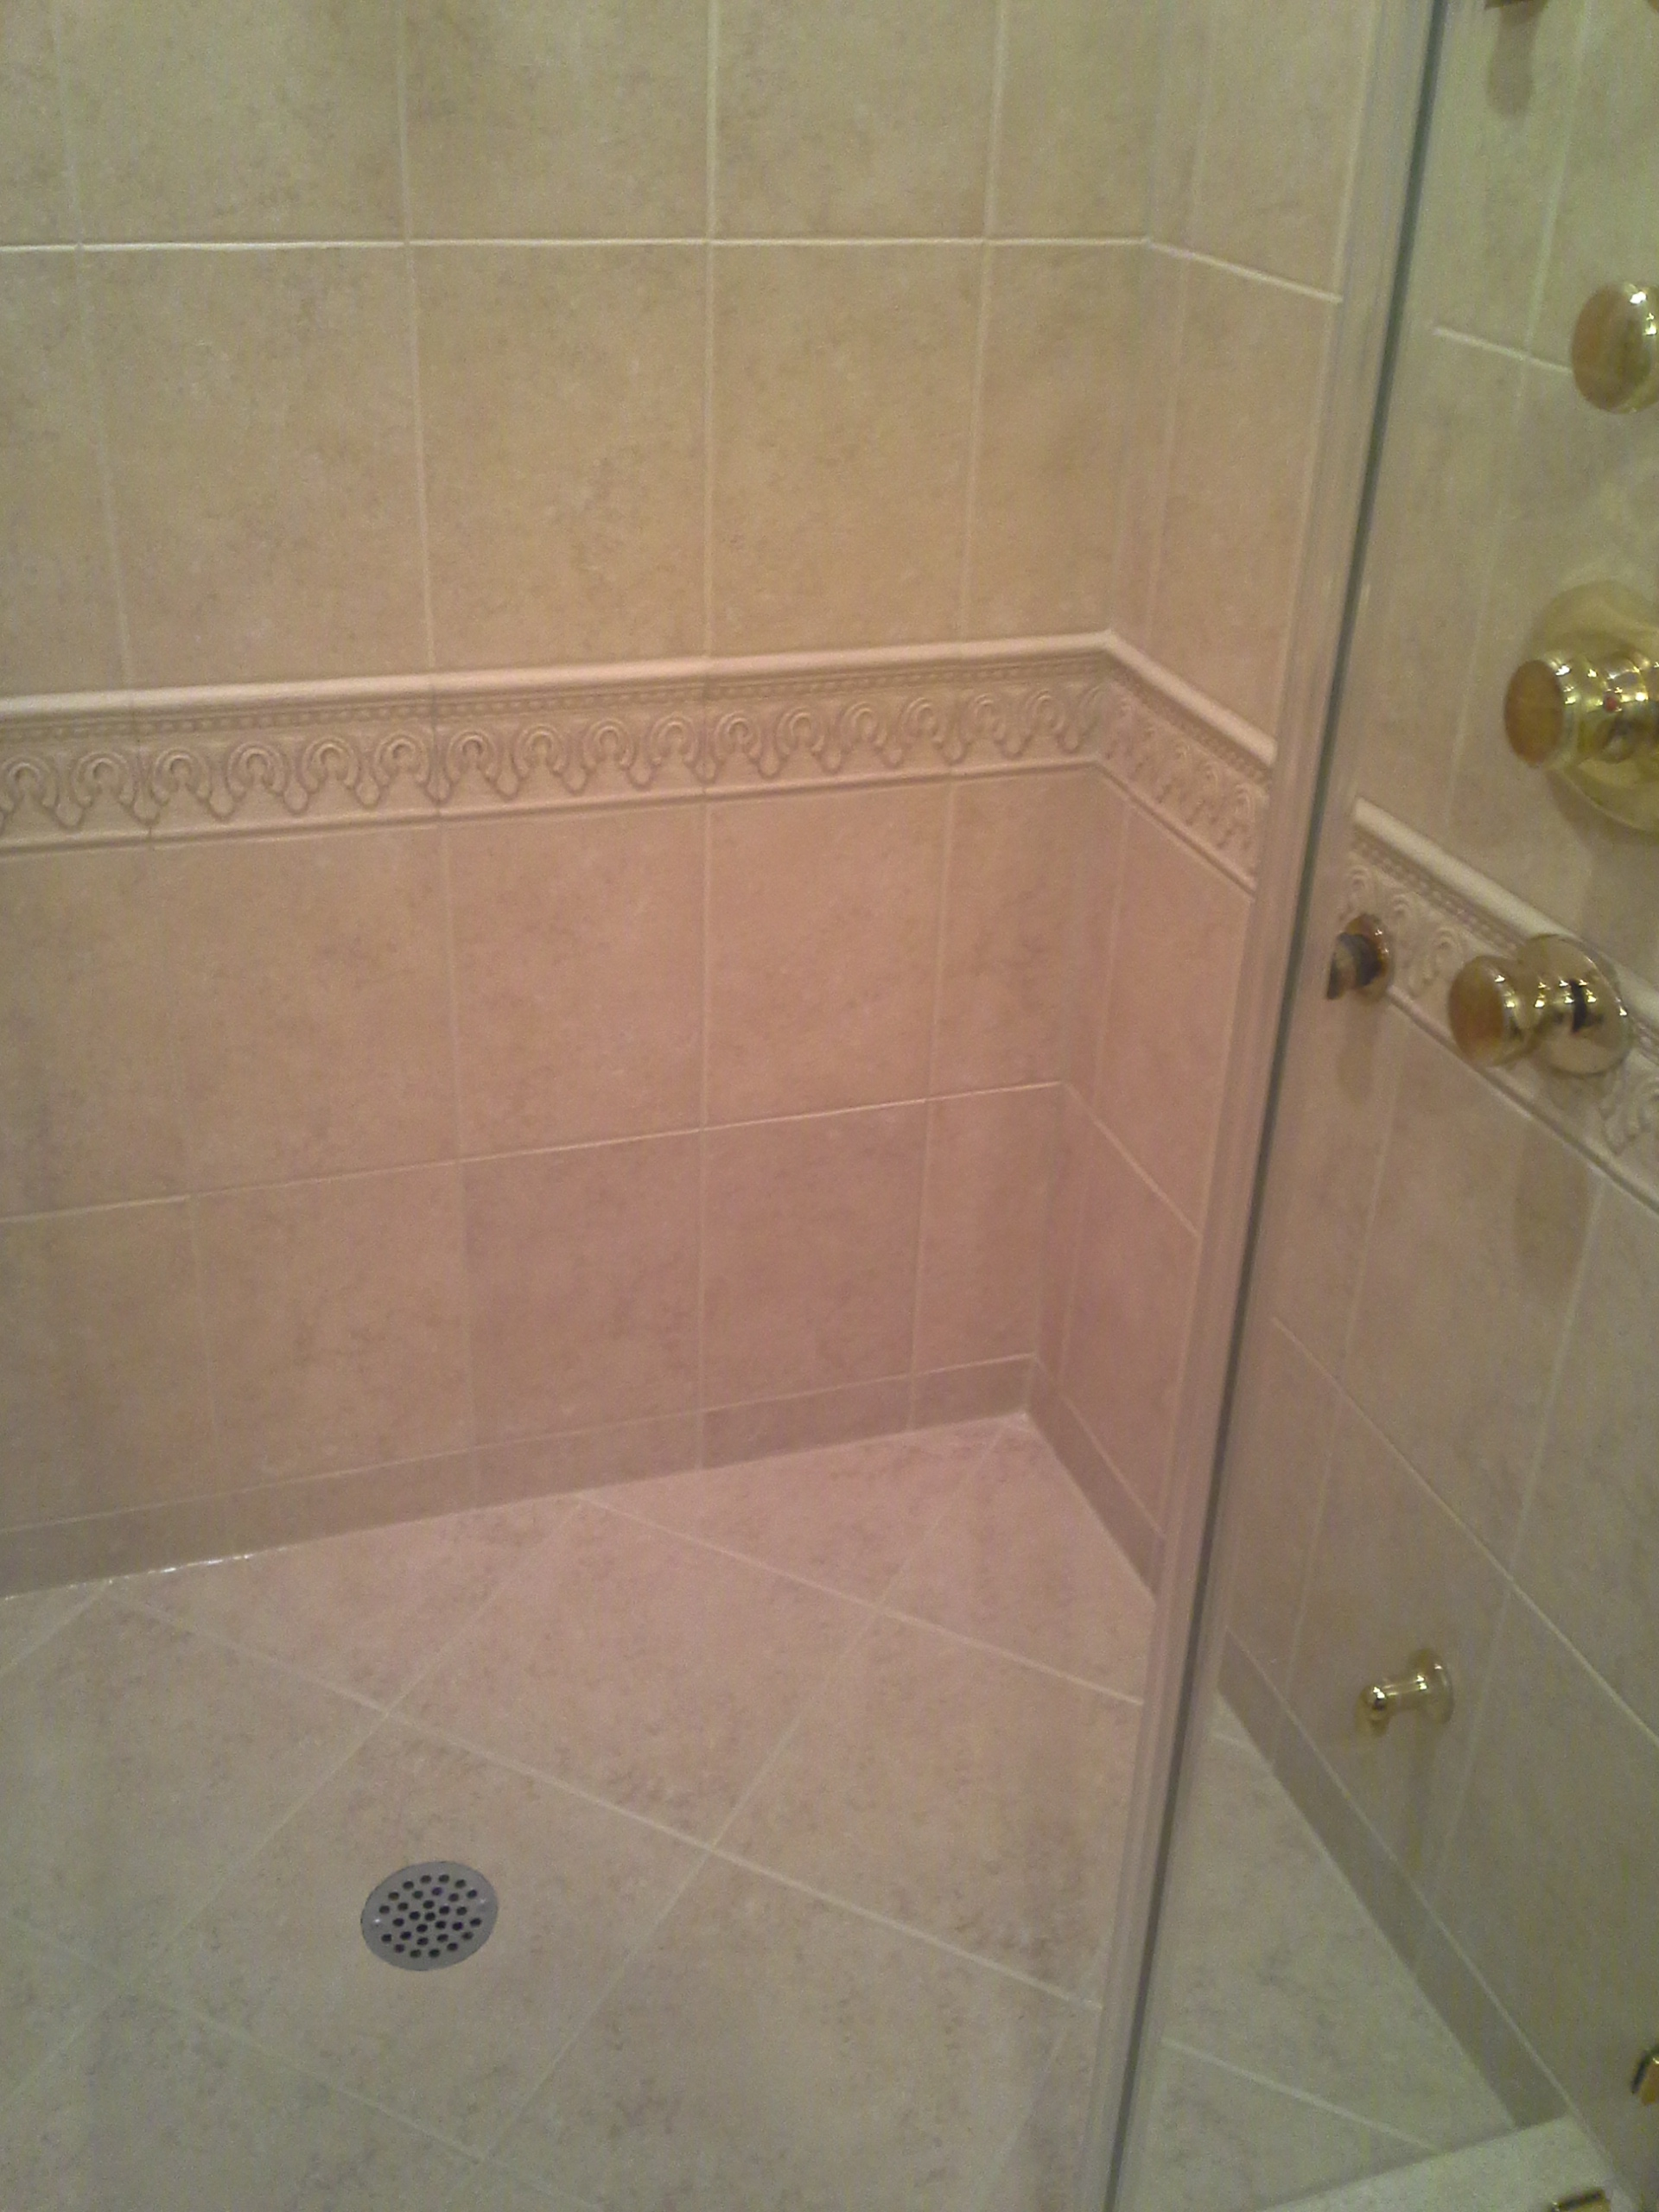 Moldy Shower Grout Caulk Bathroom Grout Repair Vs Dirty Foyer